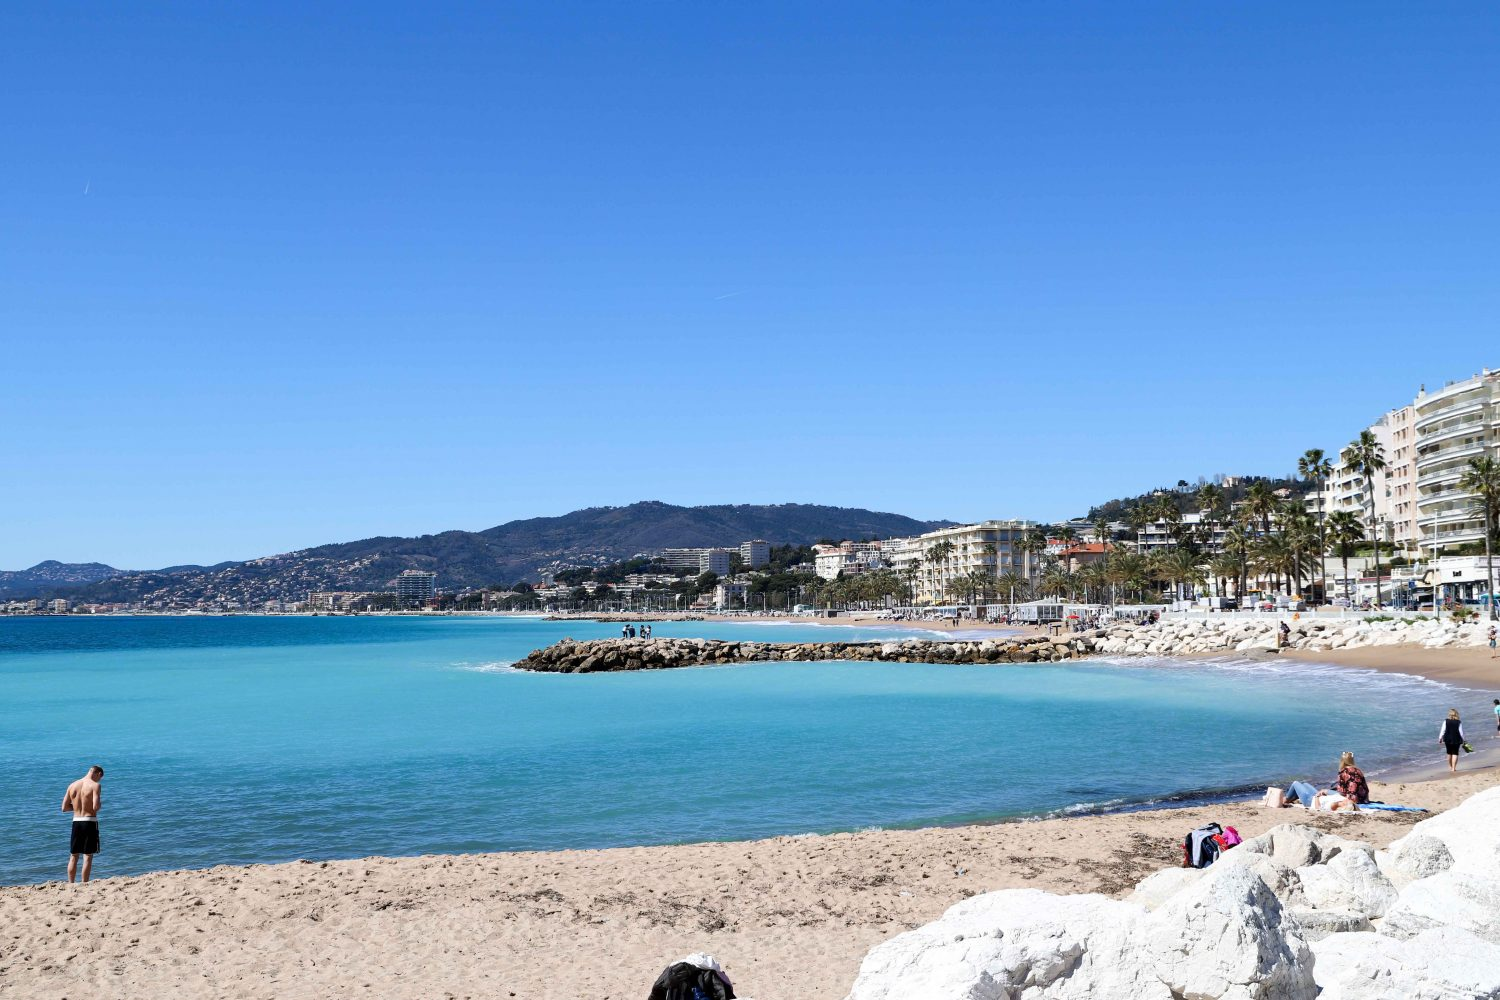 Beach in Cannes, France